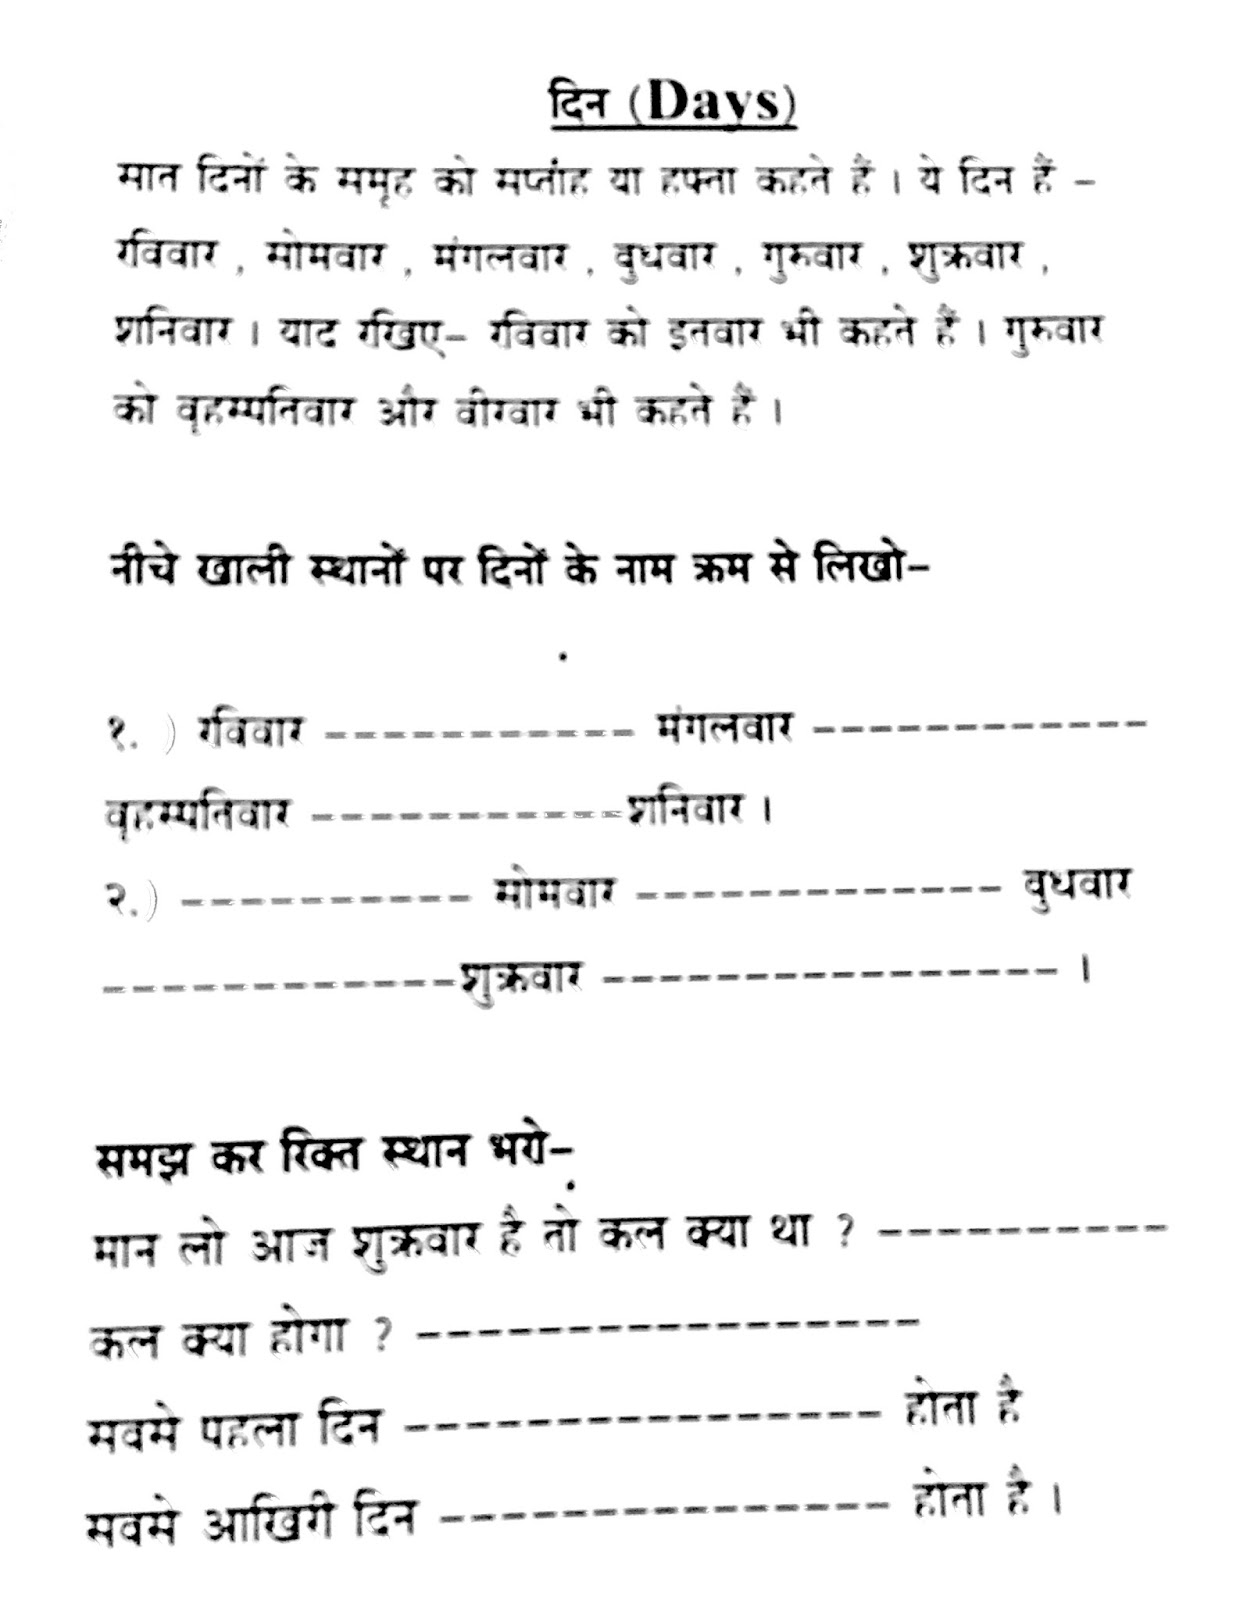 Hindi Grammar Work Sheet Collection For Classes 5 6 7 Amp 8 Work Sheets On Colours Days Months